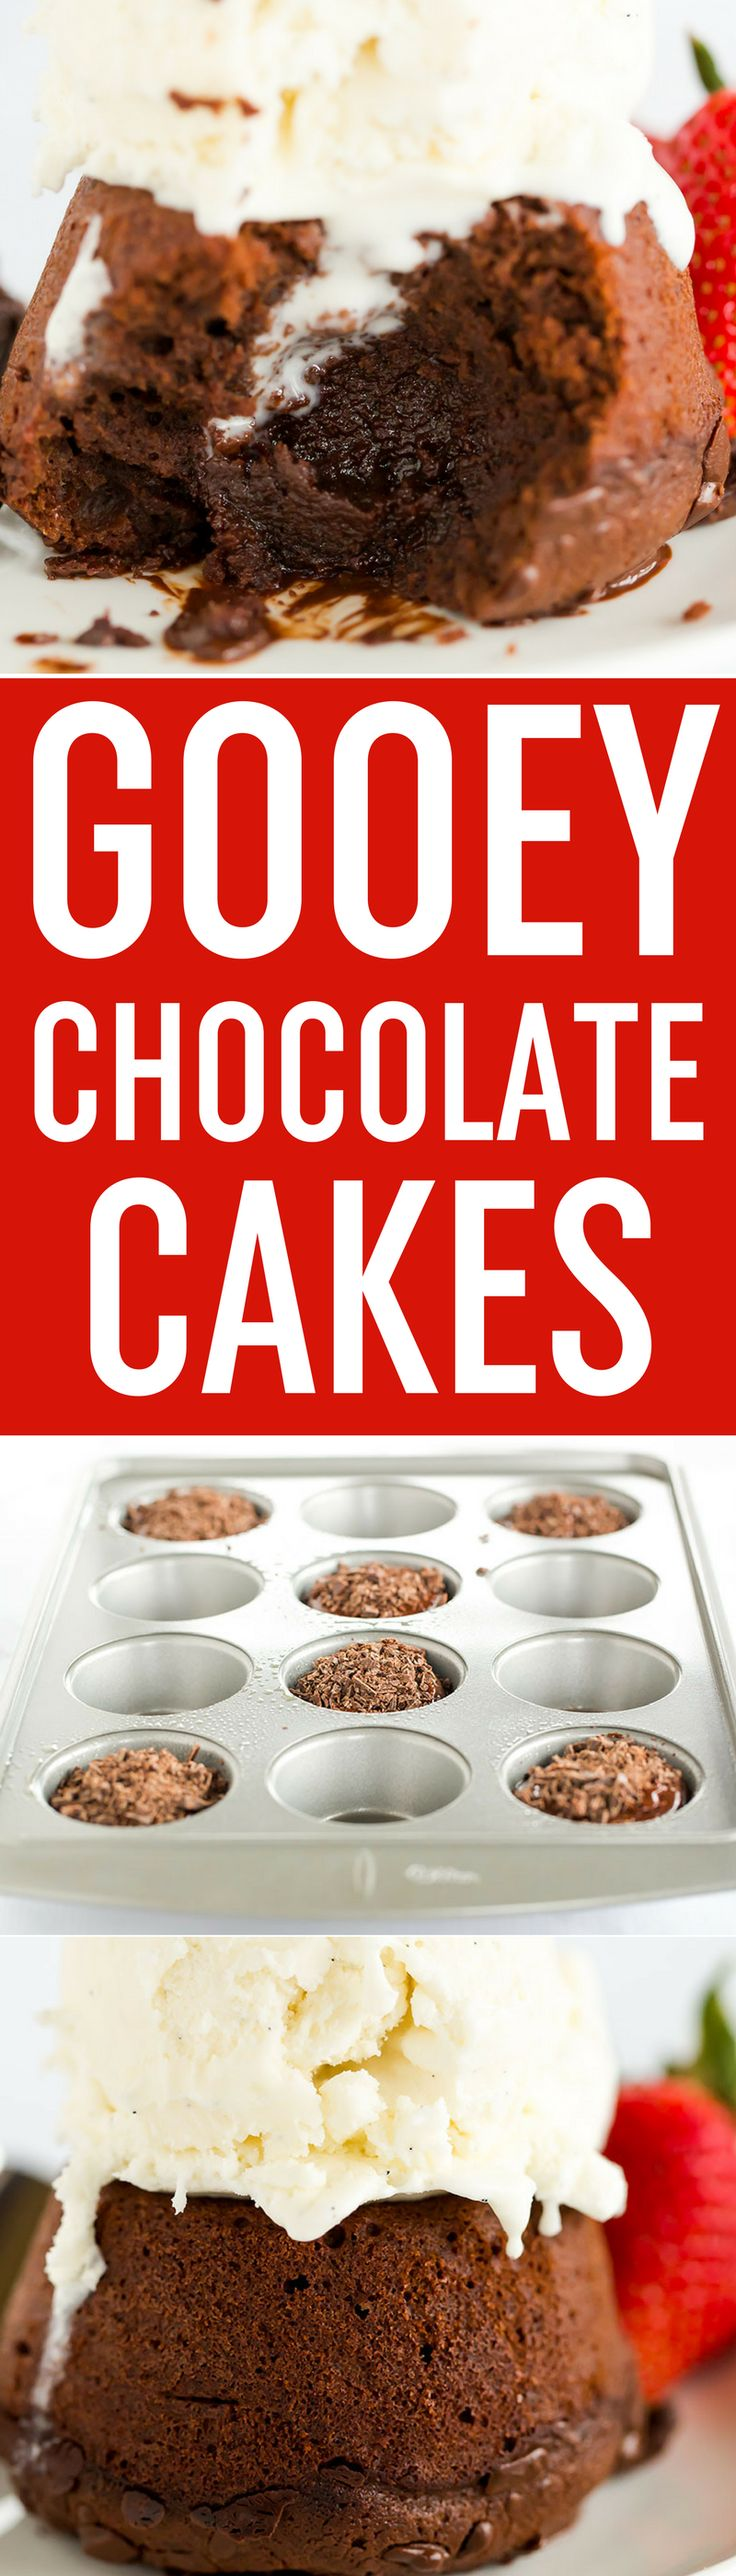 Gooey Chocolate Cakes - Baked in individual servings and packed with loads of chocolate flavor, this recipe from Dorie Greenspan is perfect for dinner parties or keeping some dessert stashed in the freezer! via @browneyedbaker